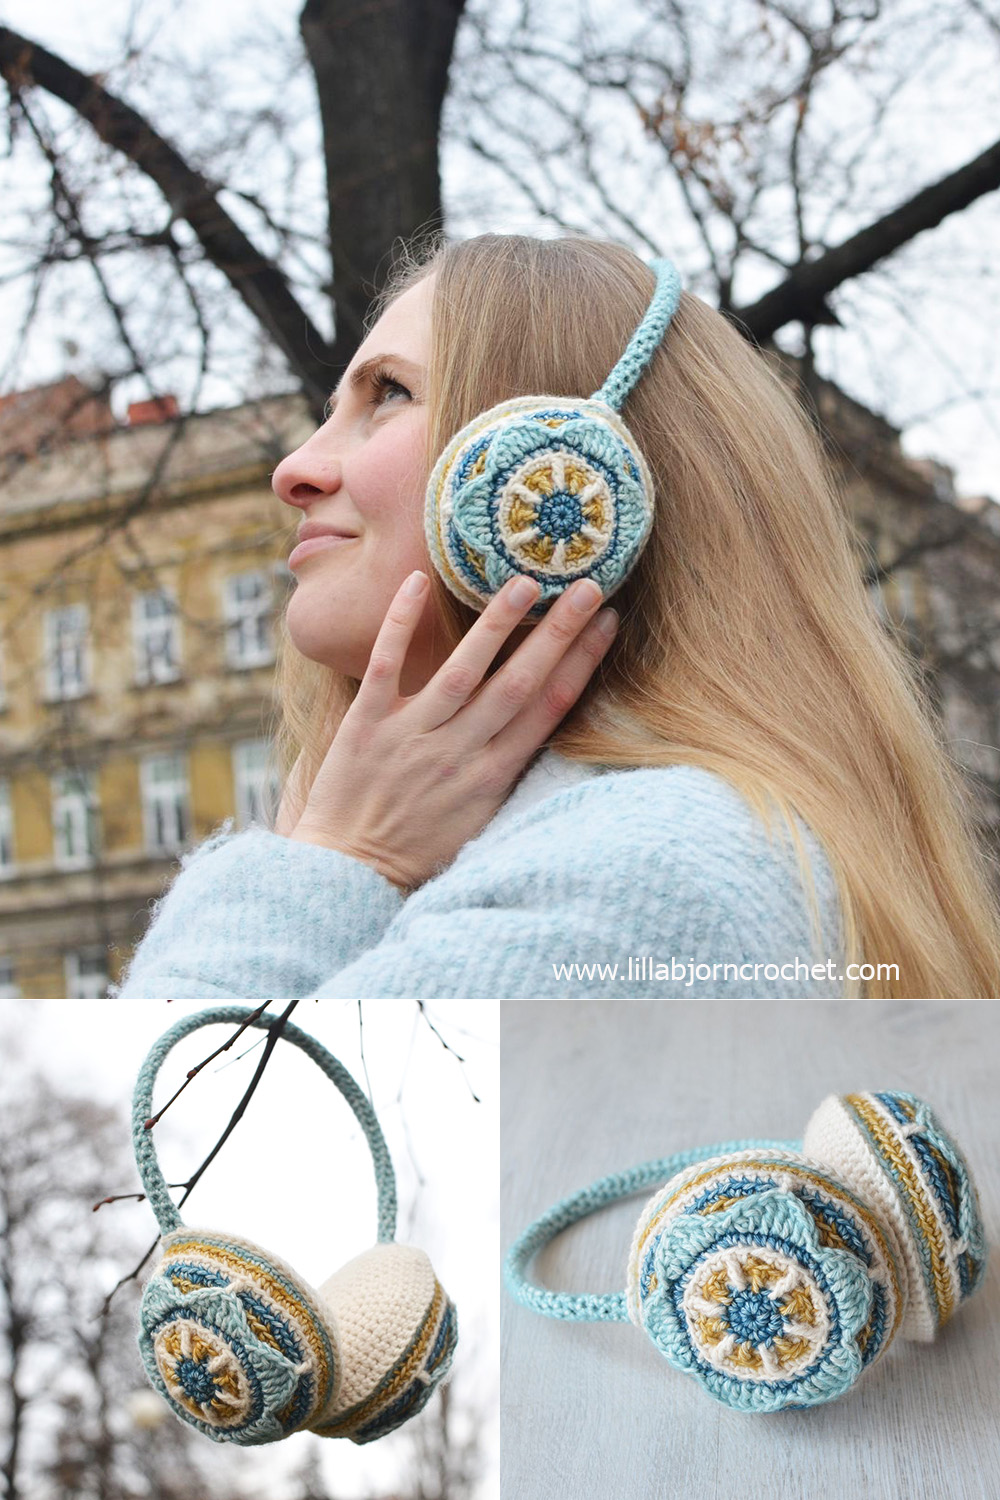 Floral Ear Muffs: Free Crochet Pattern | LillaBjörn\'s Crochet World